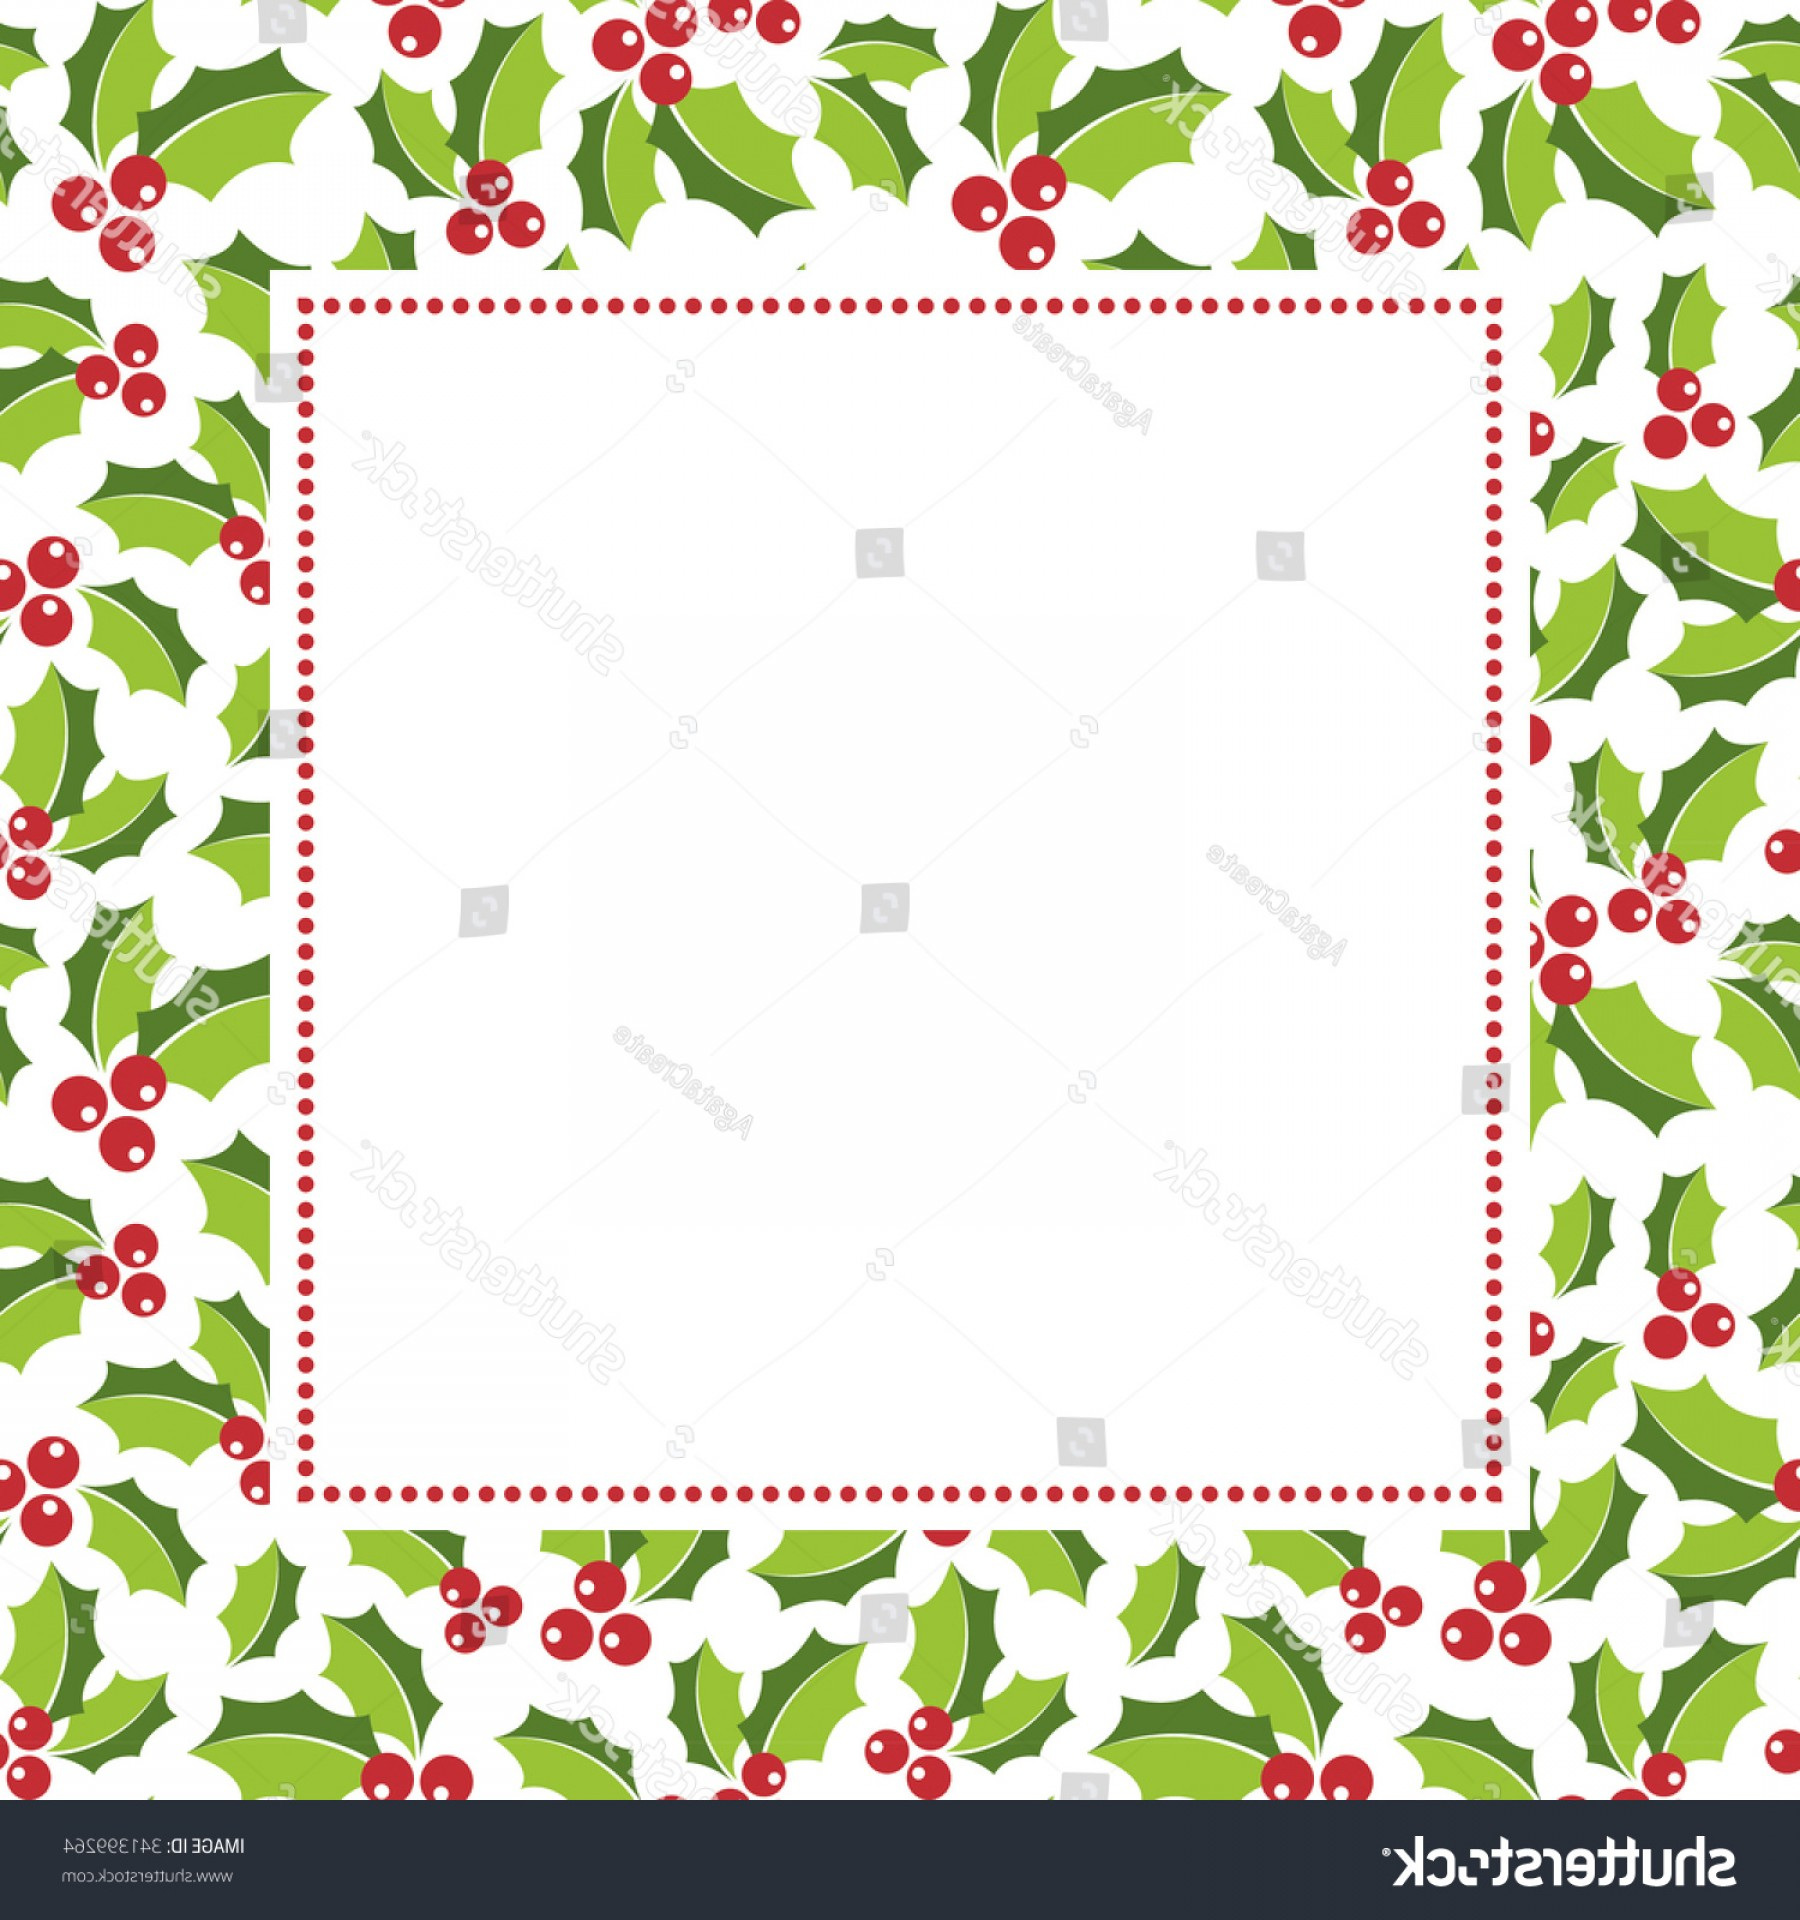 Holly Berry Vector Border: Holly Berry Boder Copy Space